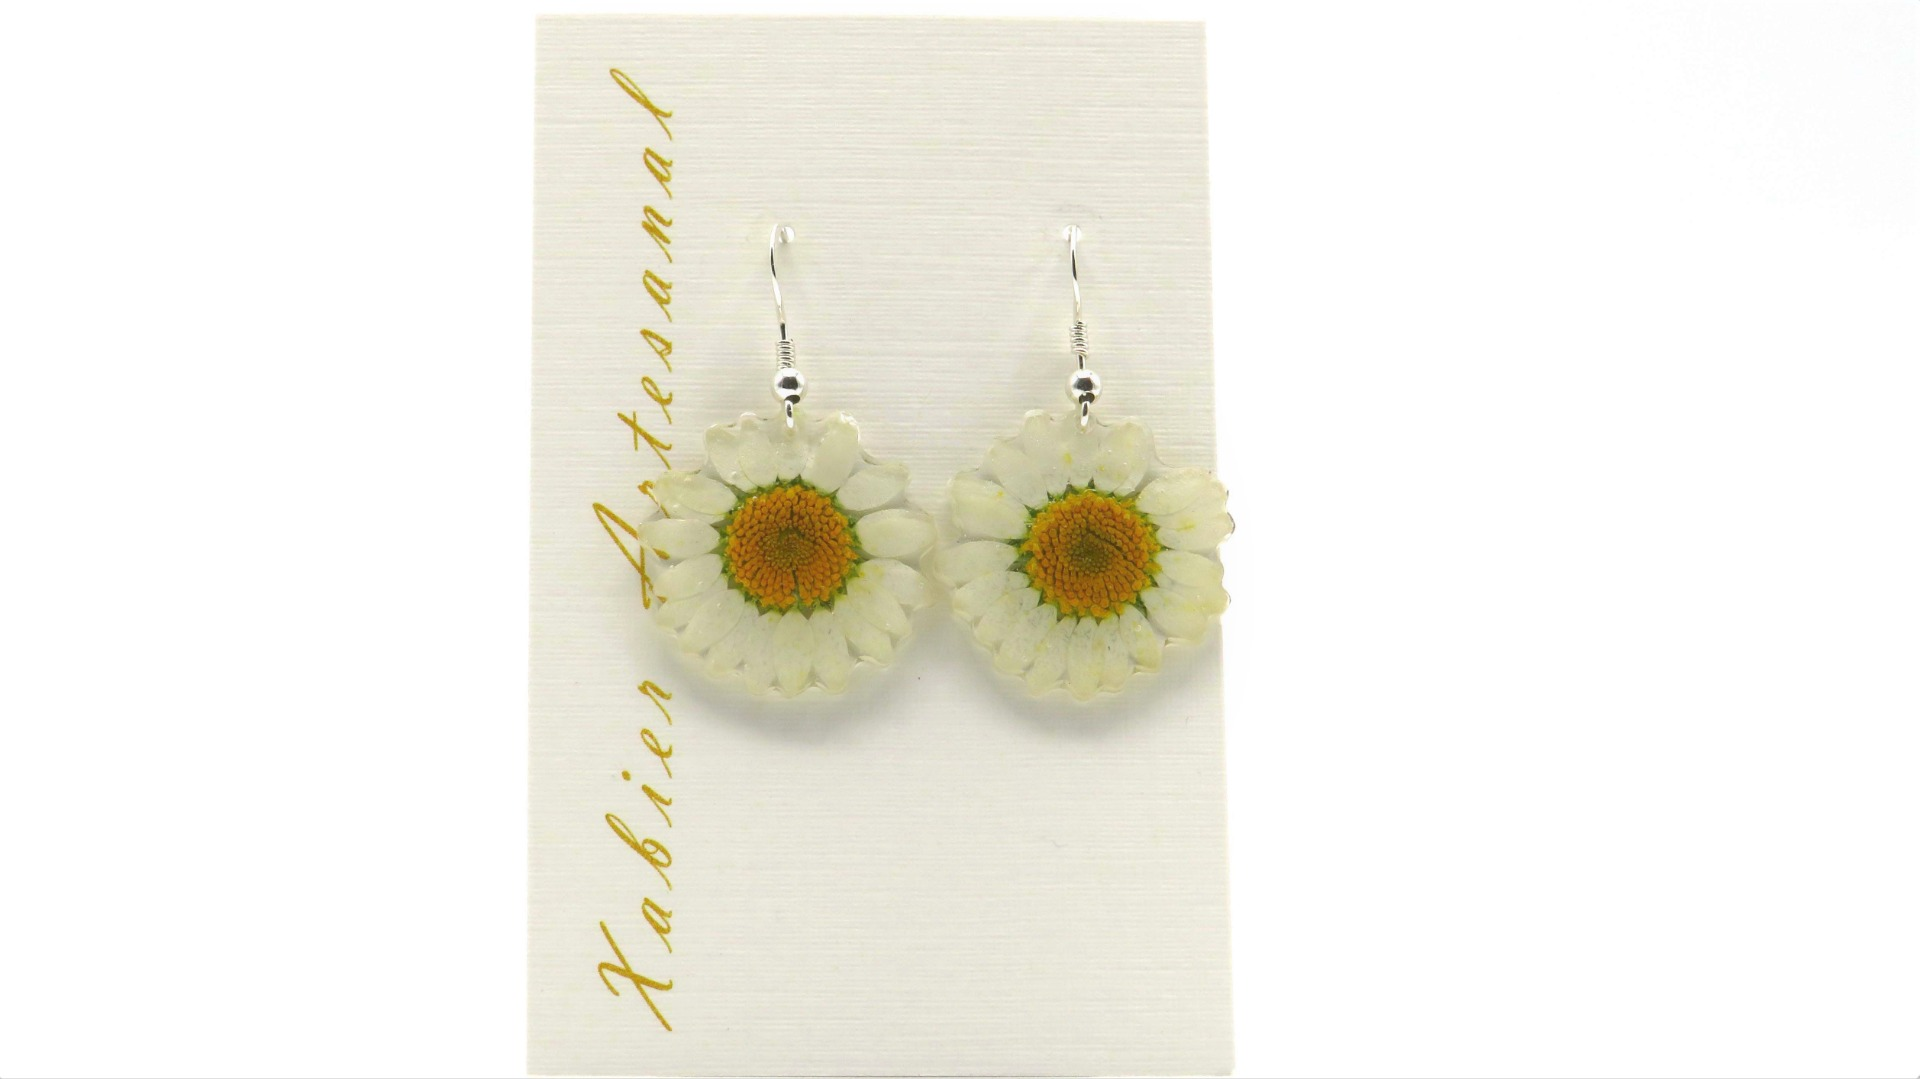 Xabier Artesanal Margaritas White Earrings